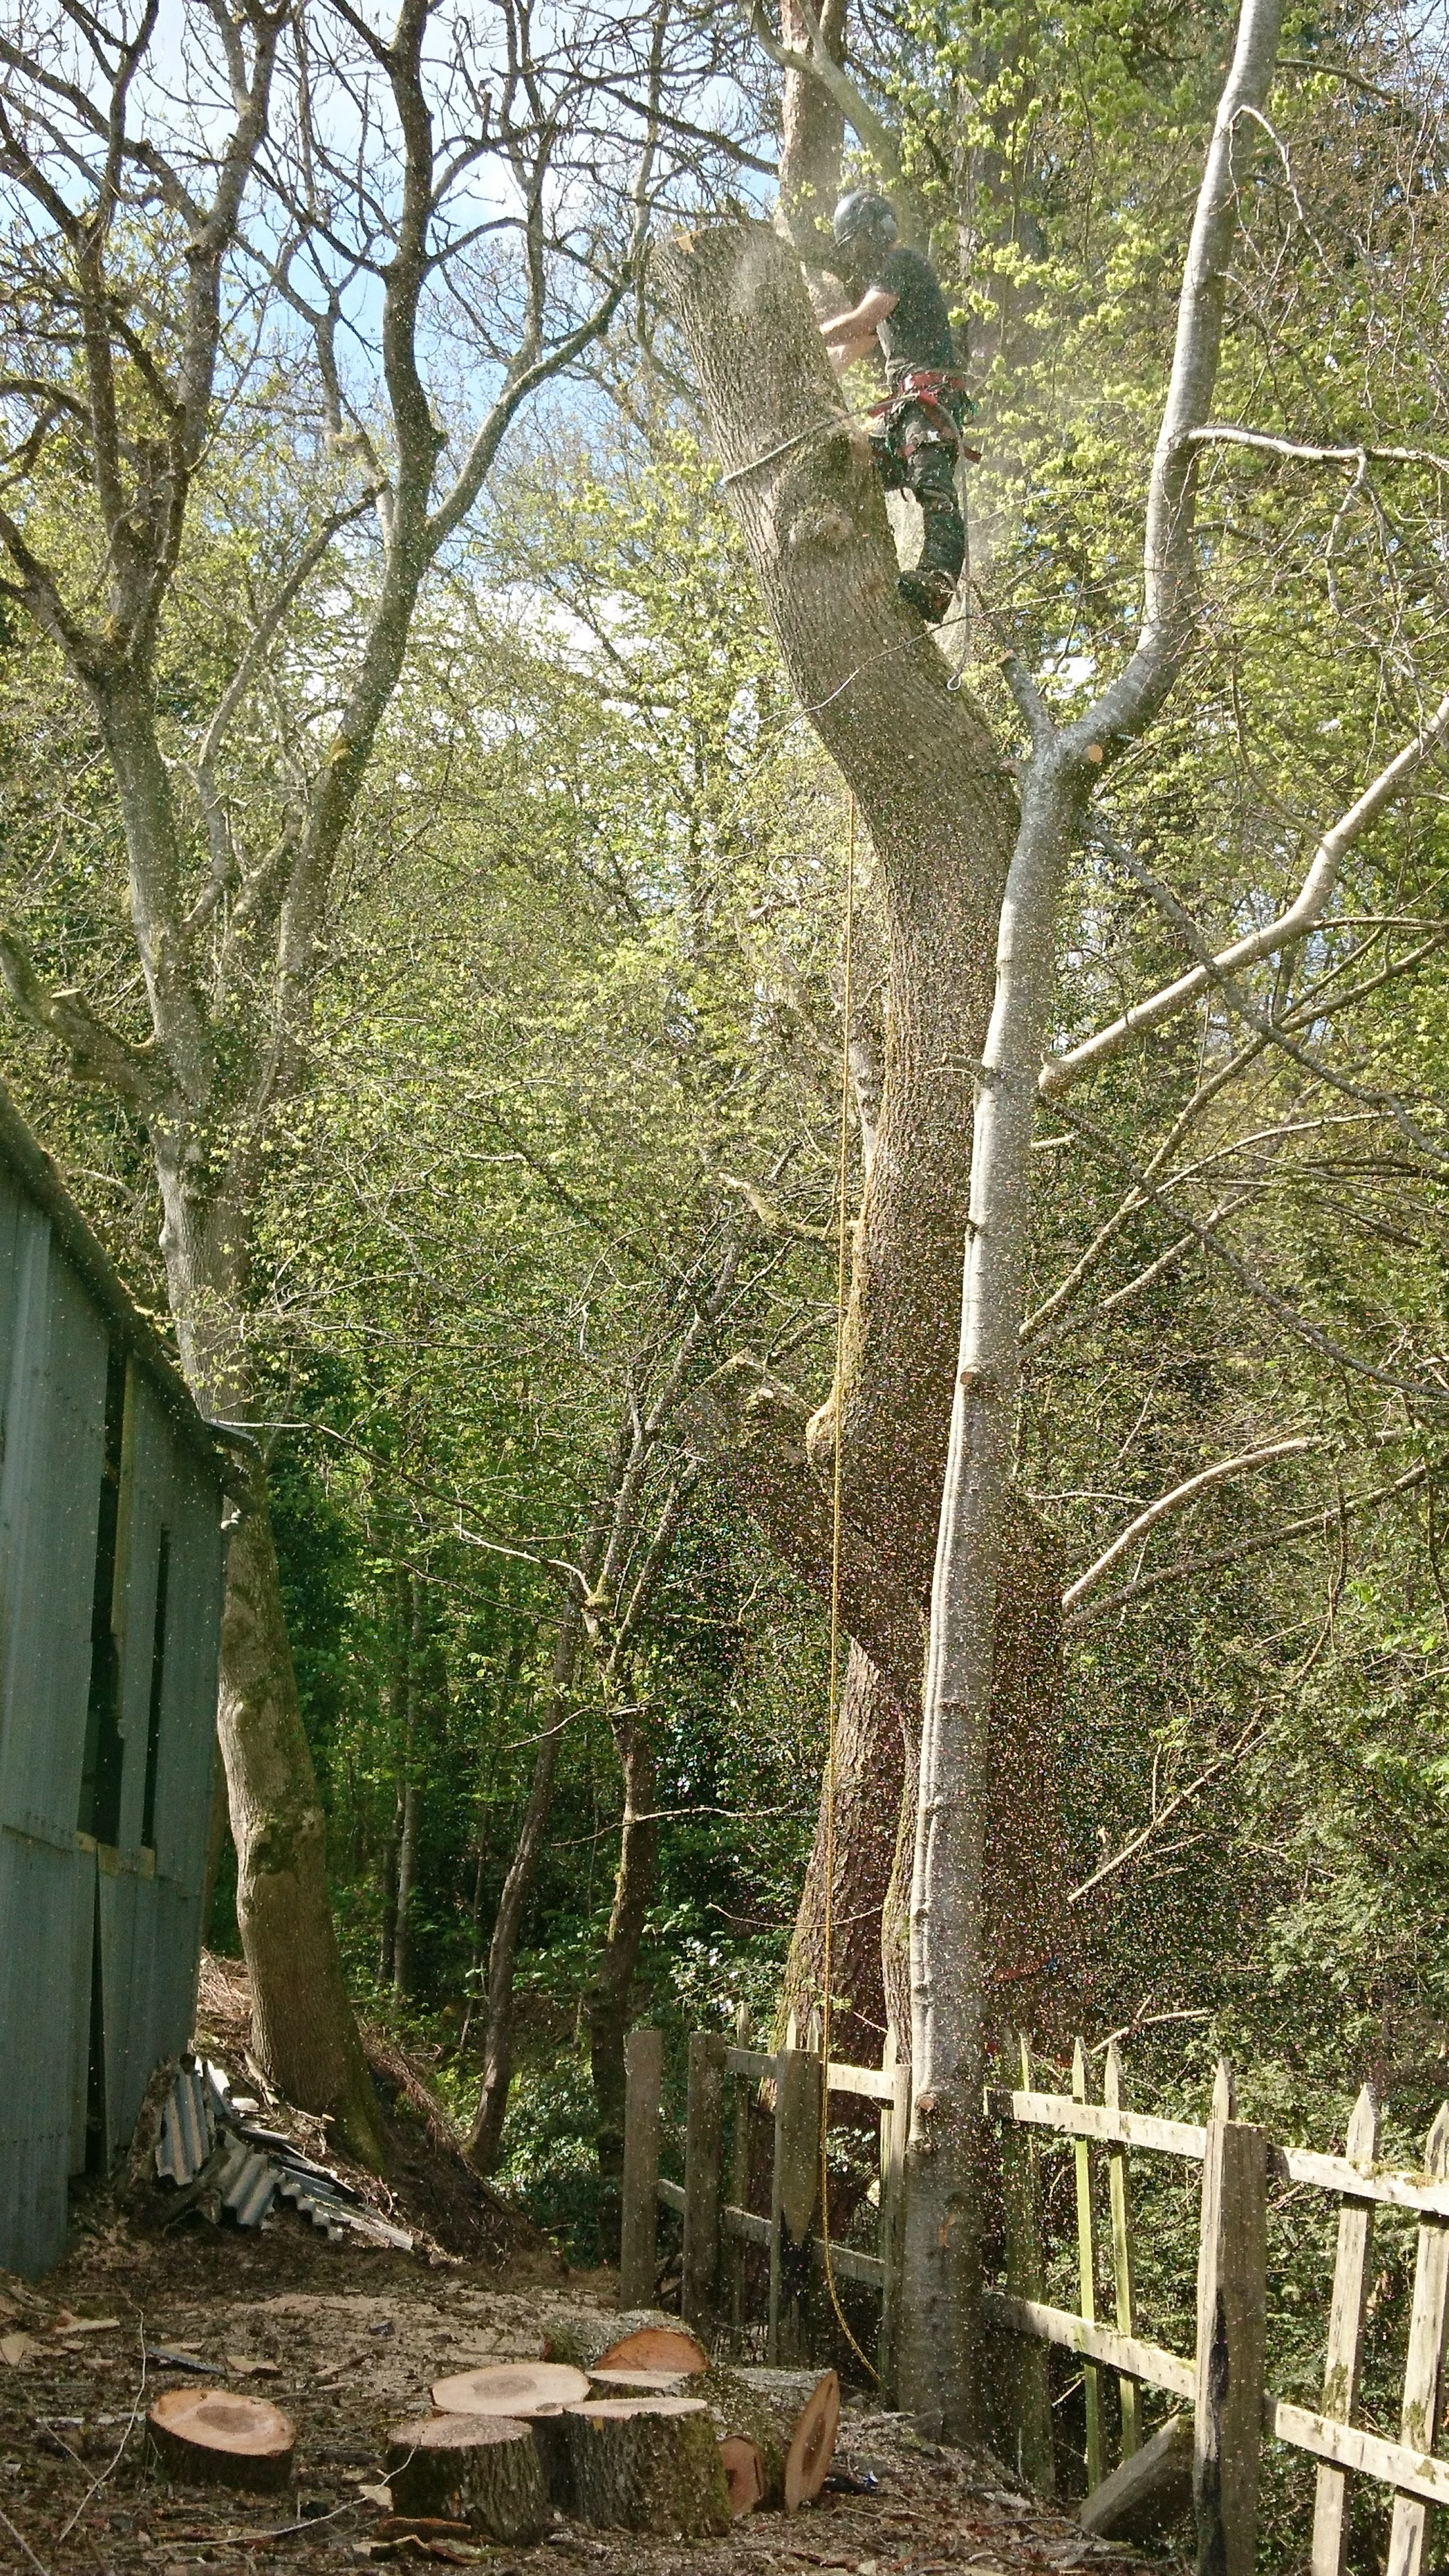 sectional felling of double stemmed ash-the entire canopy which was overhanging a hayshed was lowered in small sections